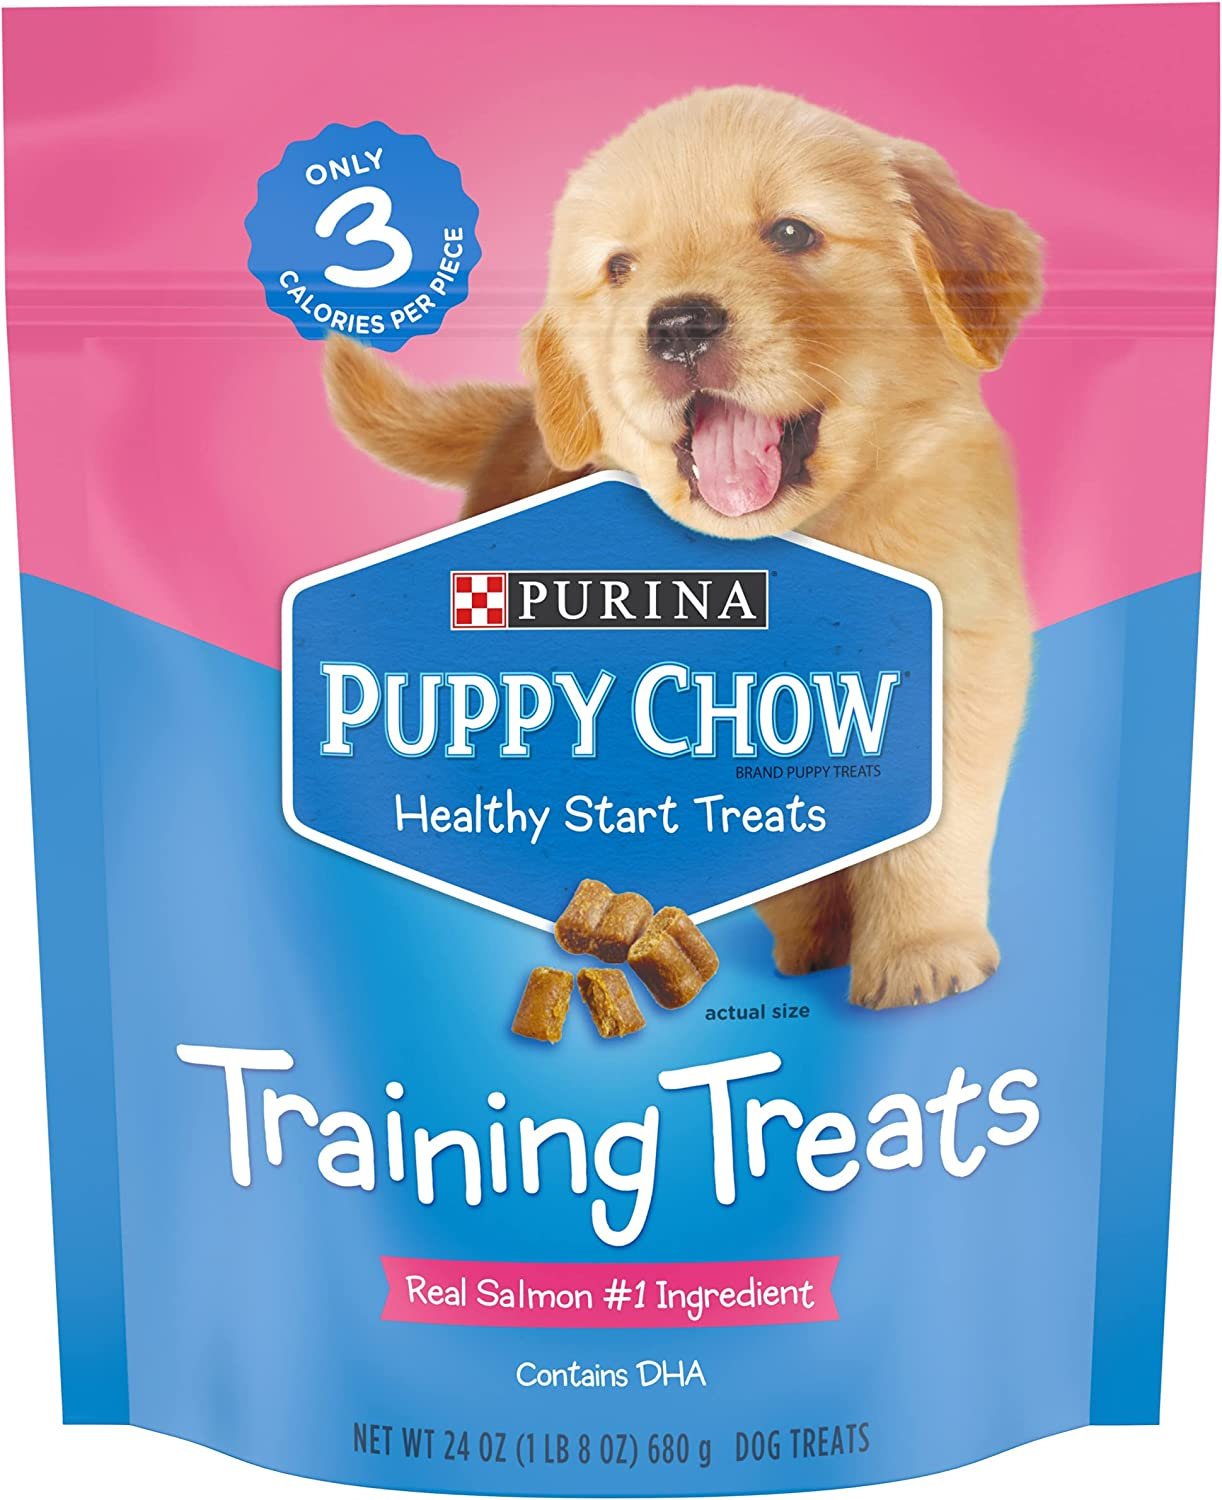 Purina Puppy High order Chow Training Treats Cash special price Salmon Start Healthy -